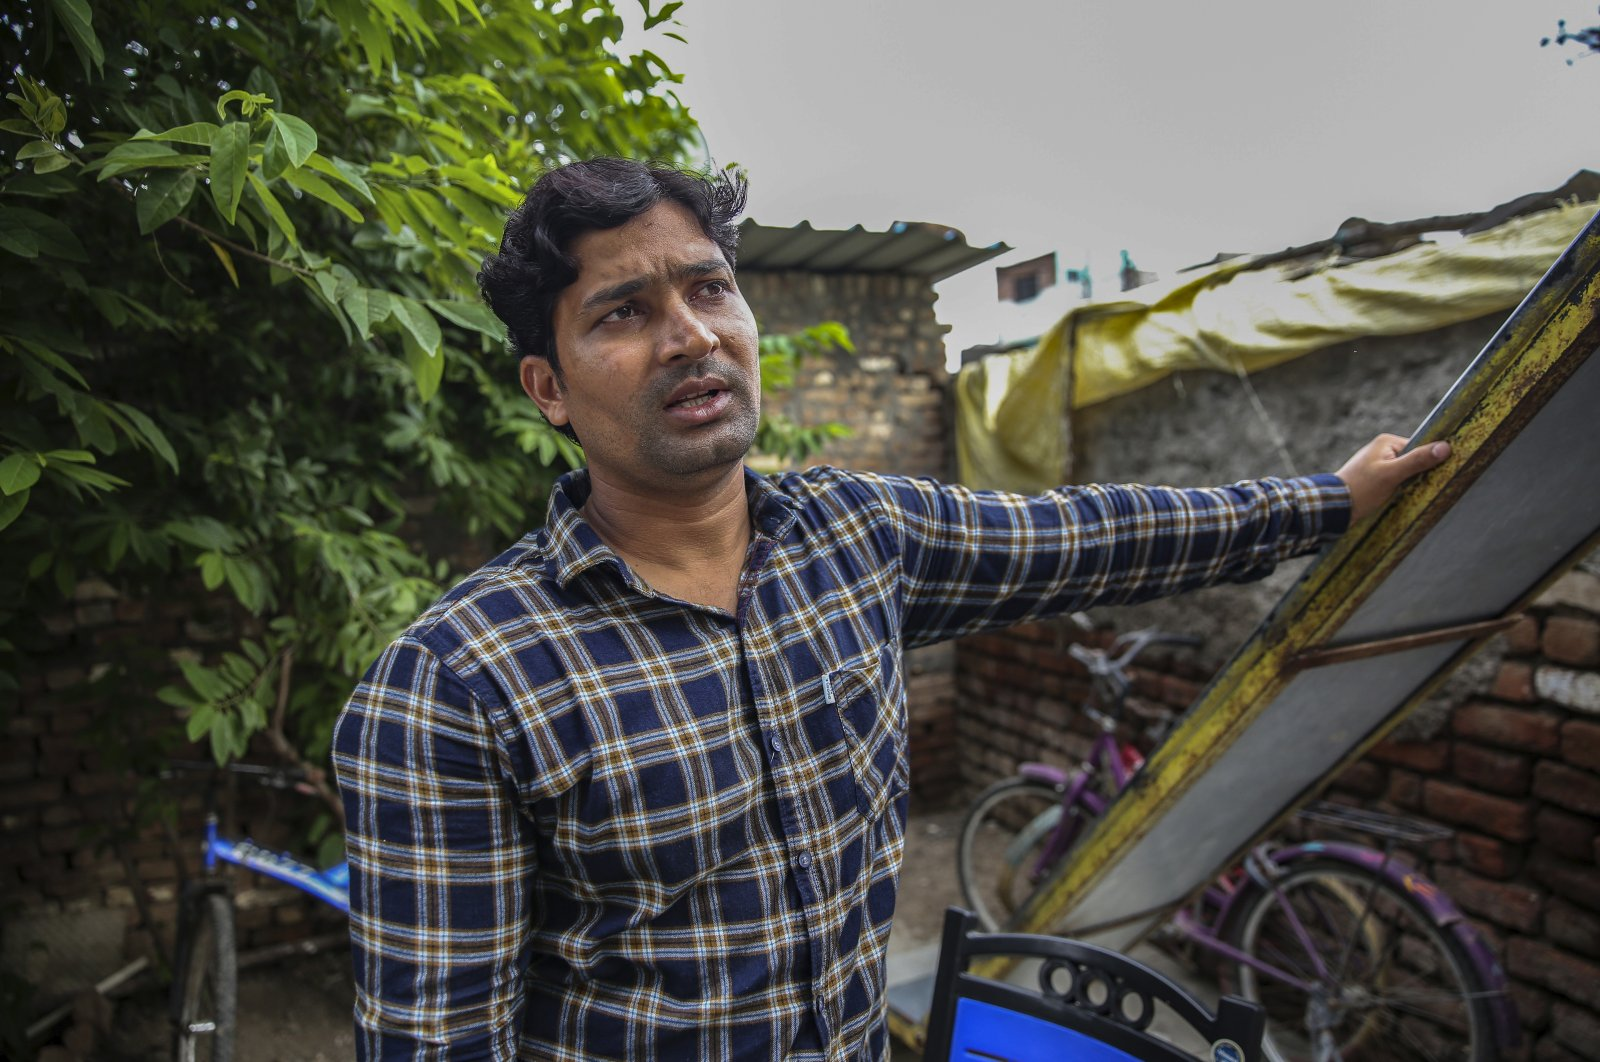 Mohammed Irfan, 24, stands outside his home in Nanded, Maharashtra state, India, on Aug. 3, 2021. (AP Photo)